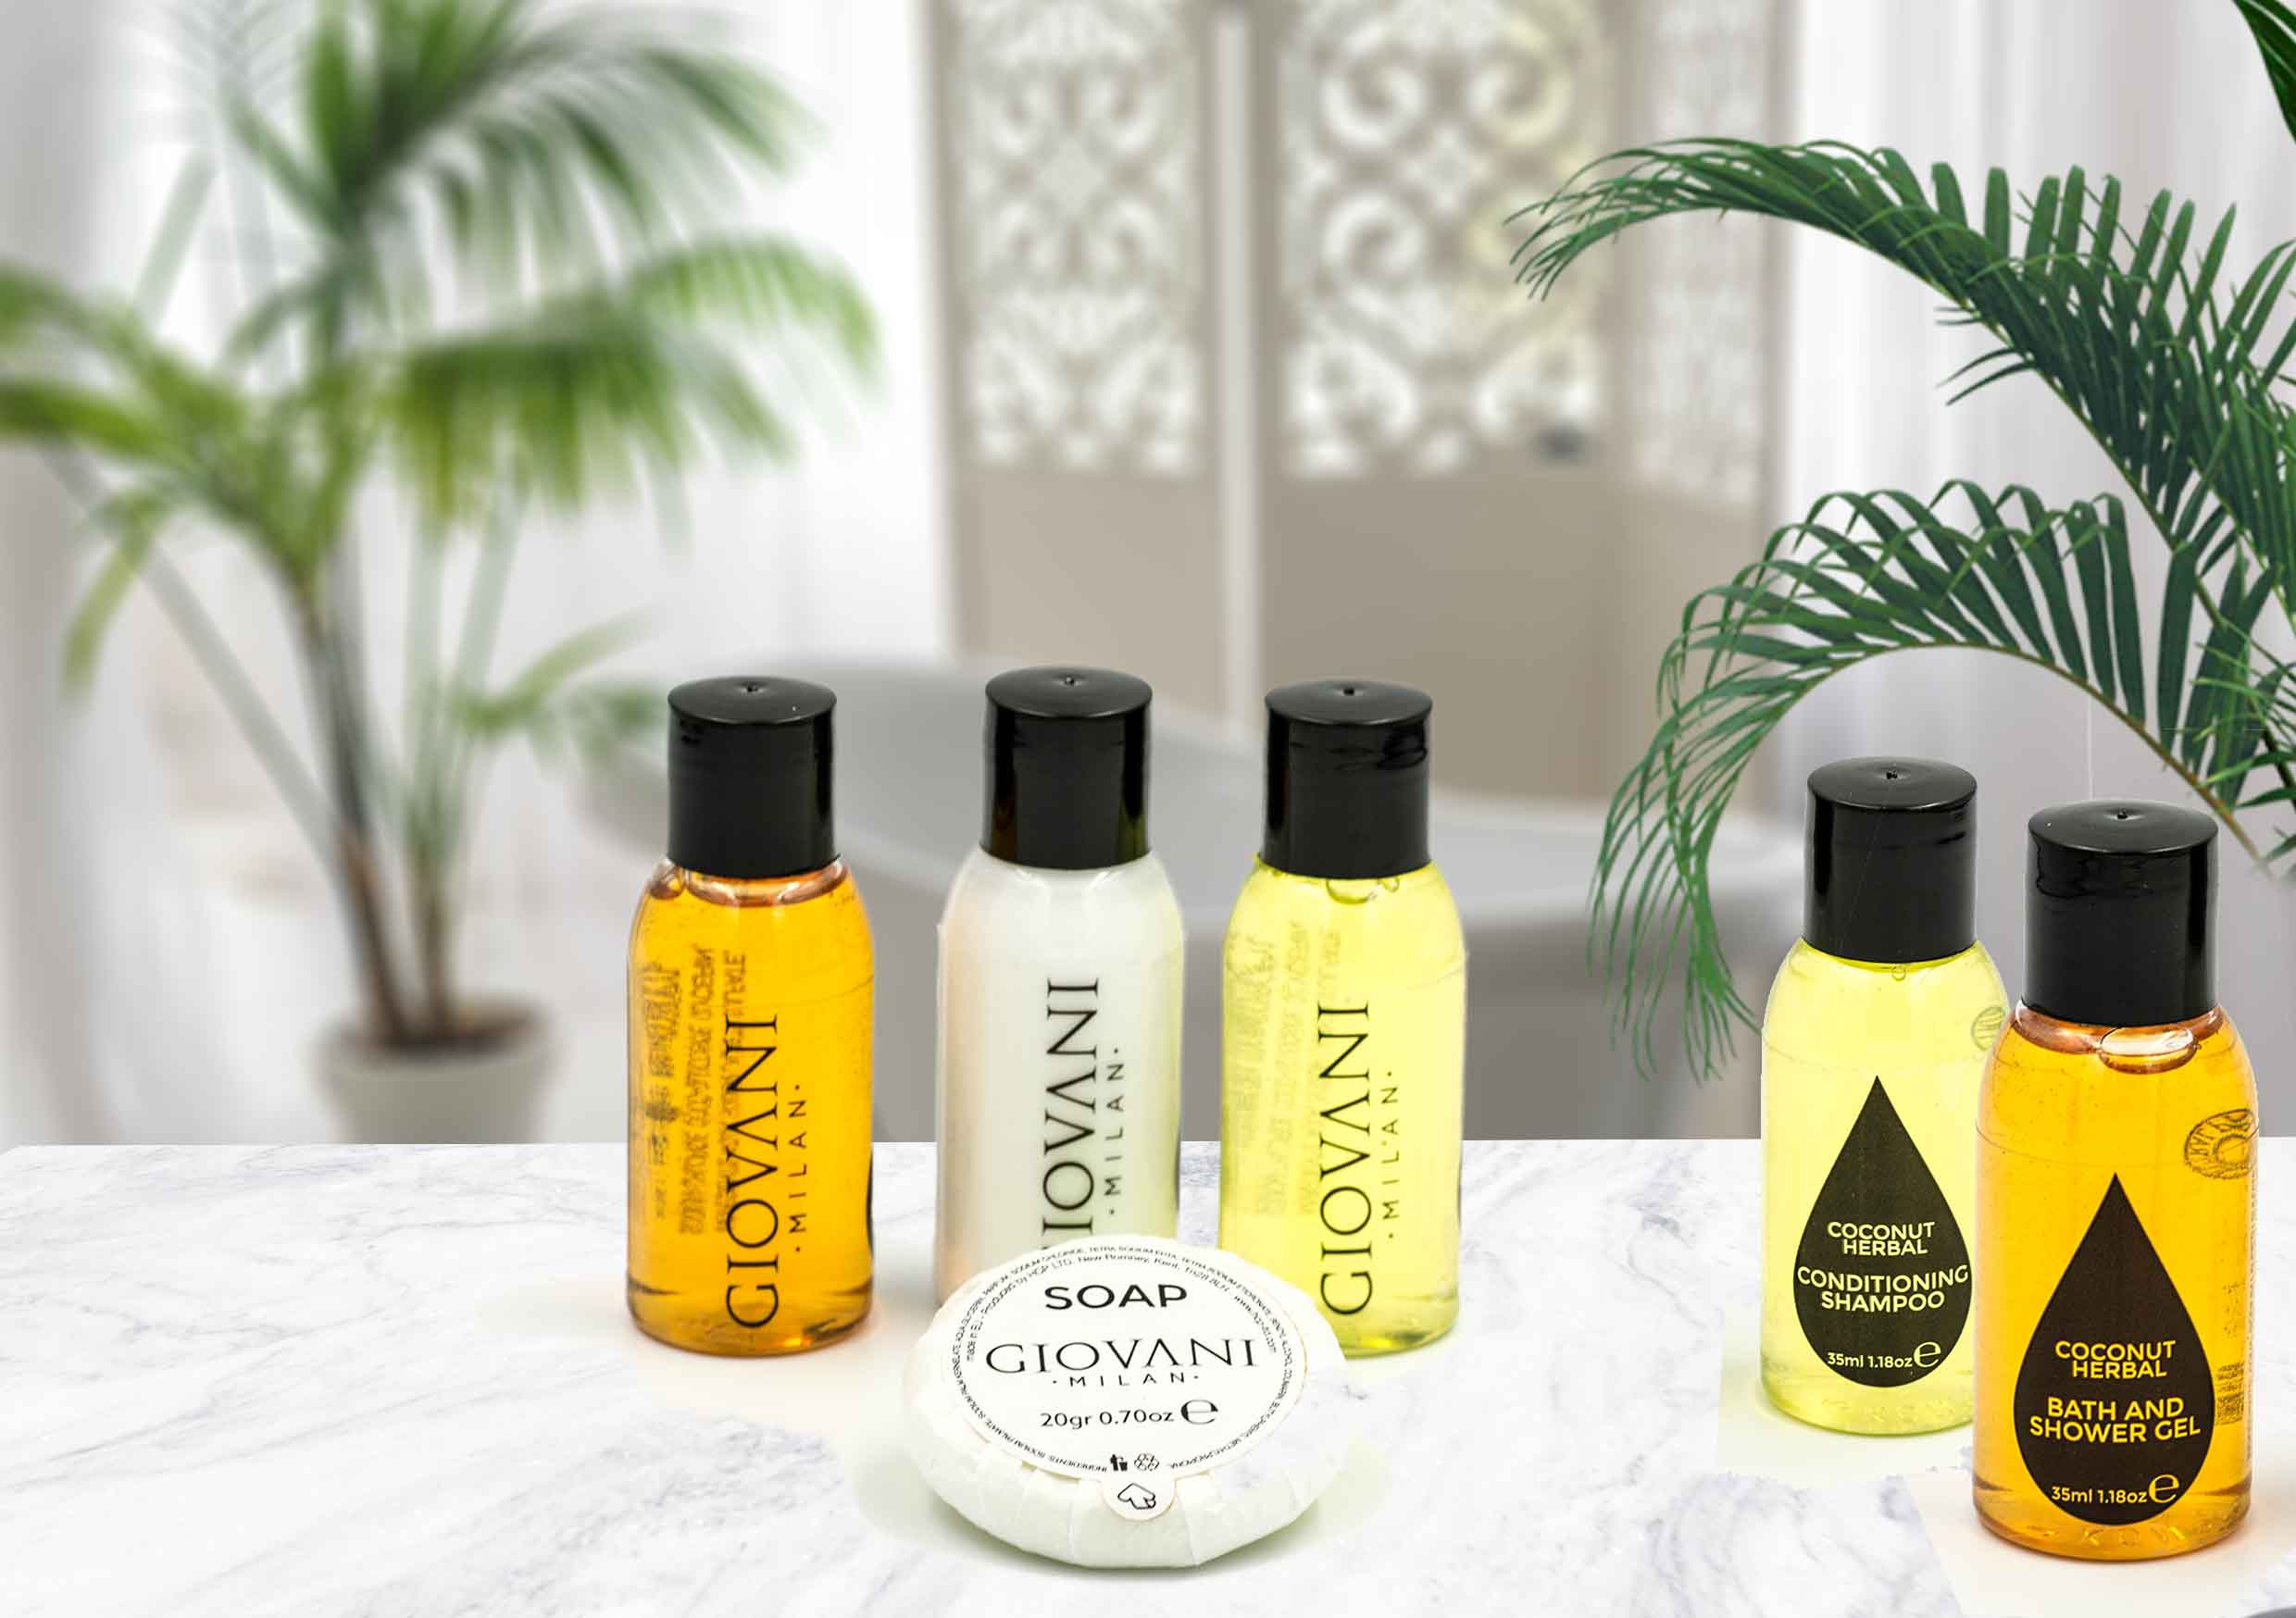 Hotel Toiletries | Hotel Complimentary Products